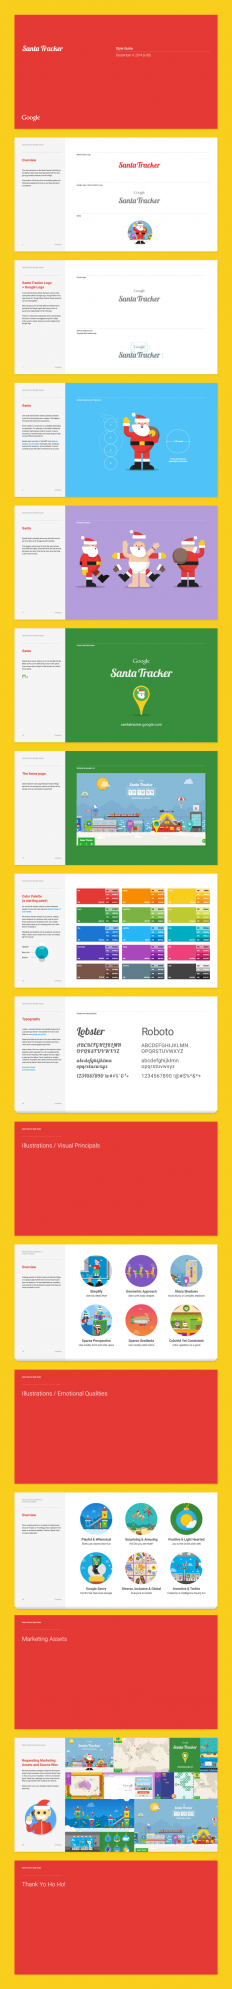 Santa2014-style-guide-attachment.png by Marcio Gutheil